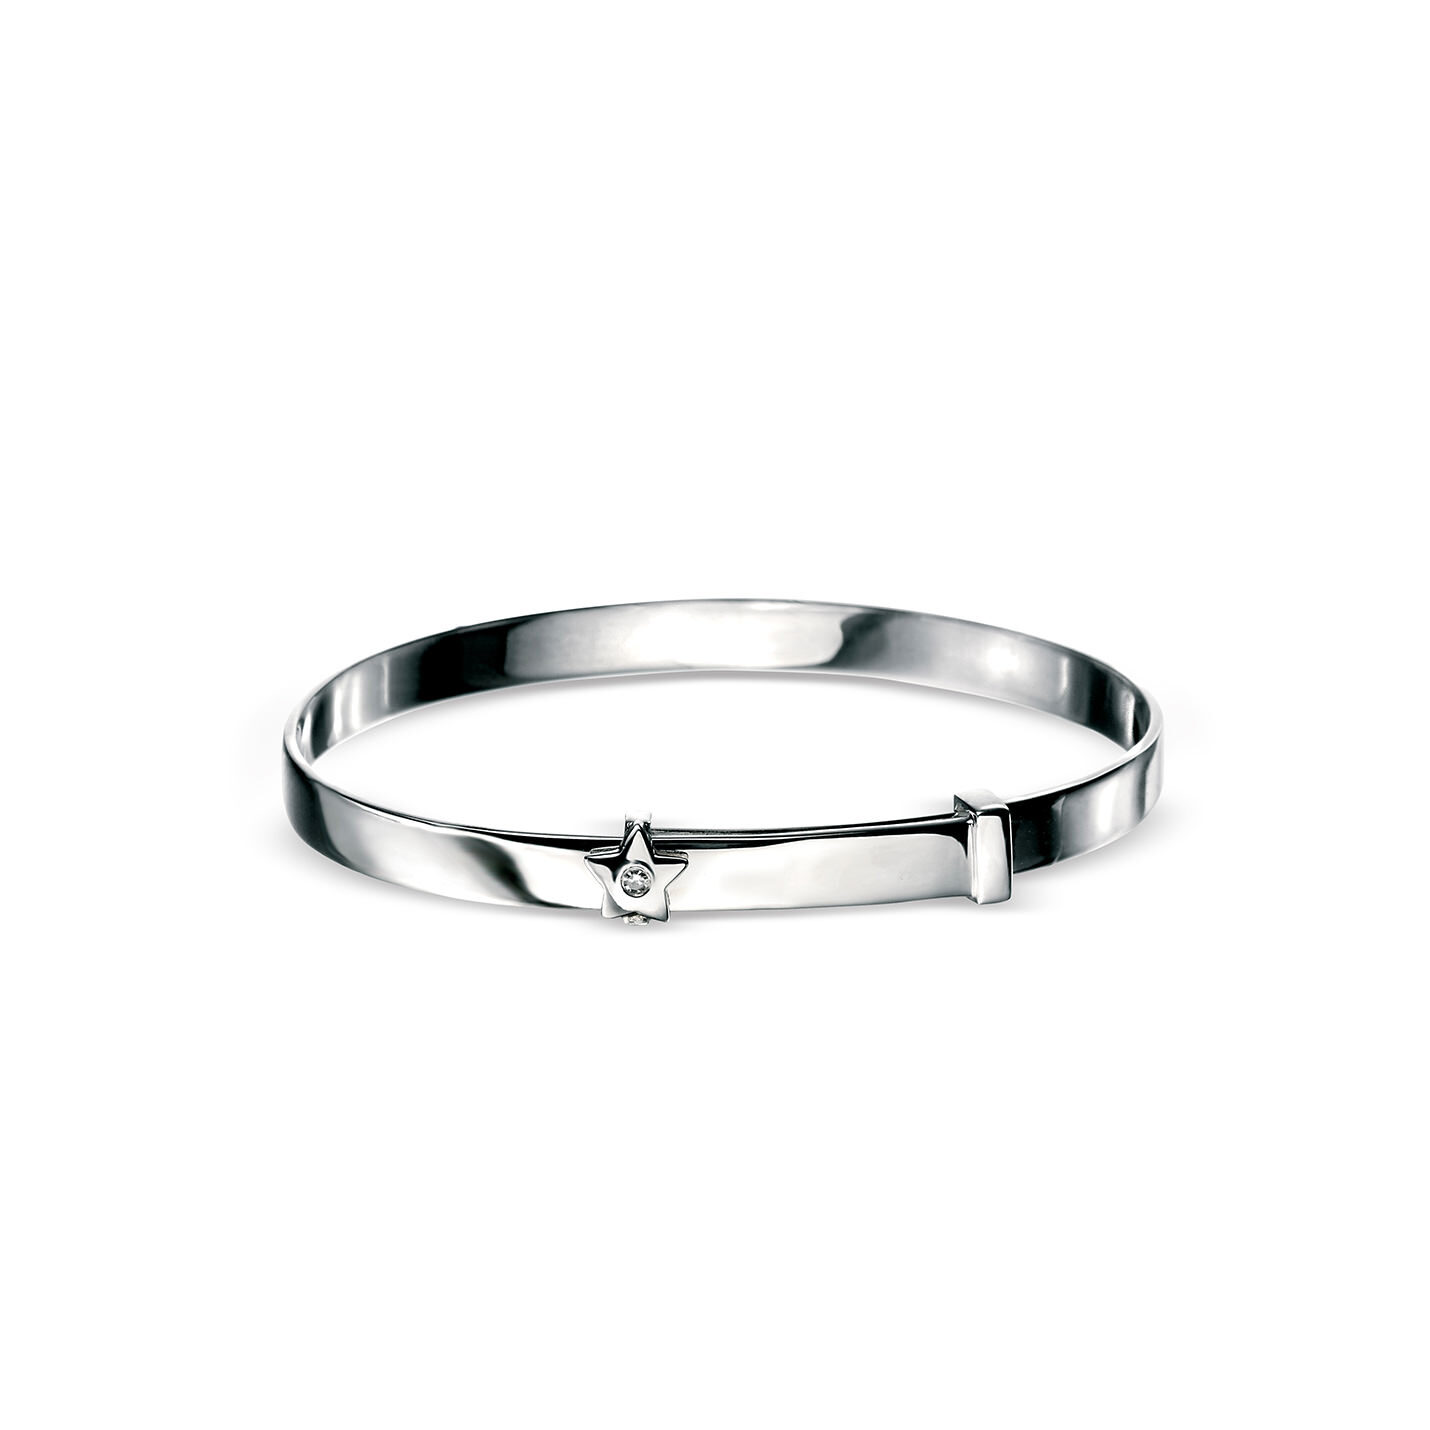 This D for Diamond sterling silver baby bangle is the perfect christening gift.  The full silver bracelet has a star & diamond detail and can be engraved to suit.